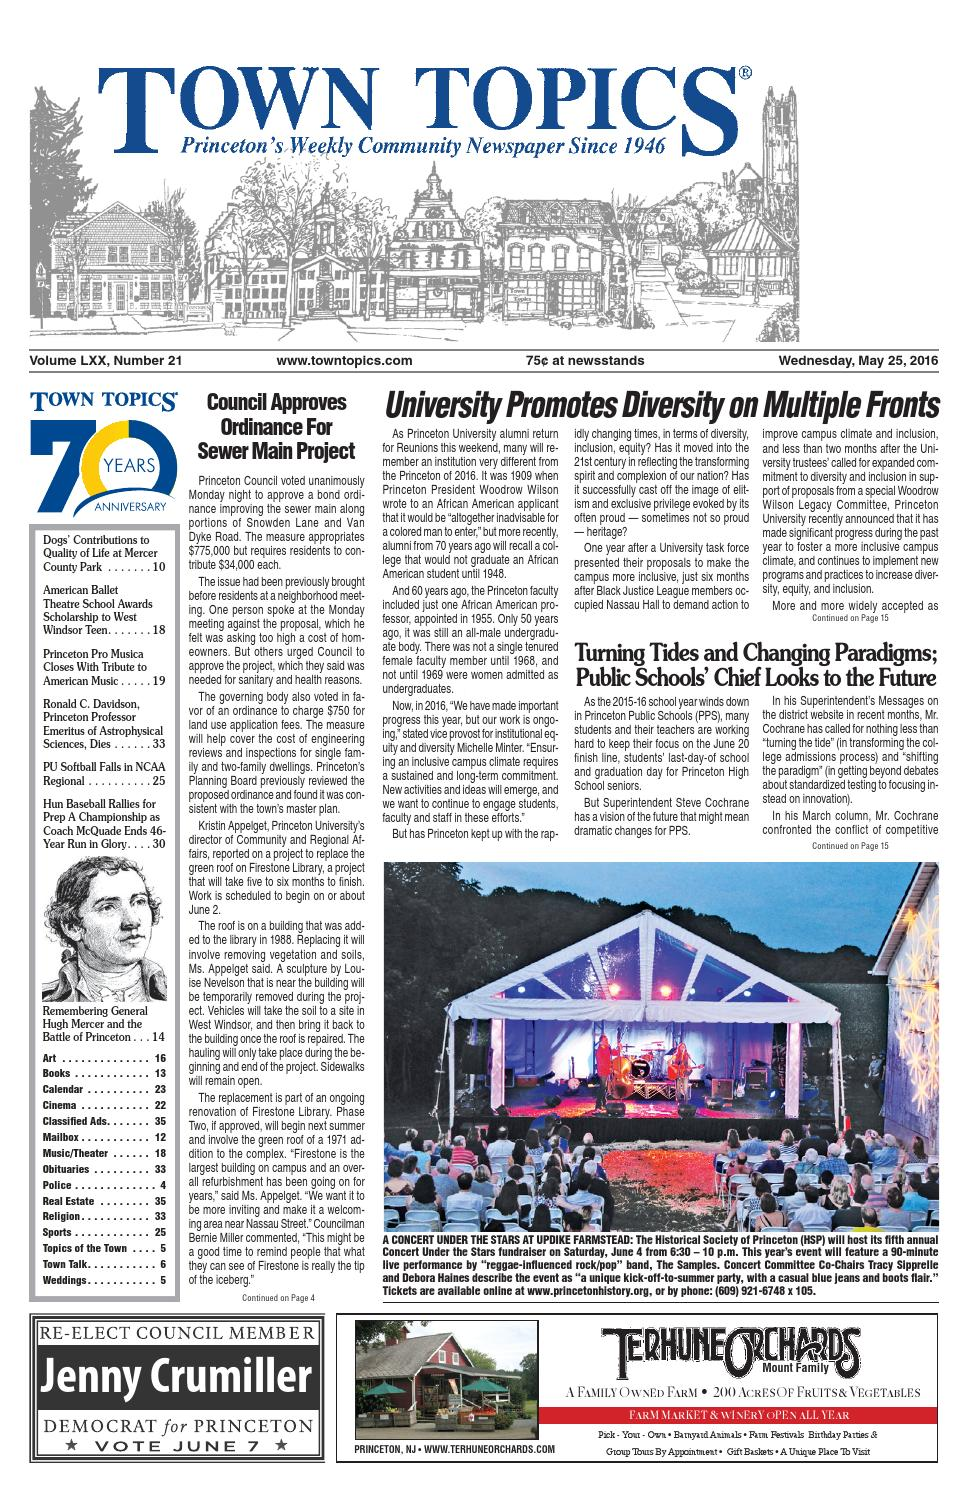 Town Topics Newspaper 5-25-16 by Witherspoon Media Group - issuu